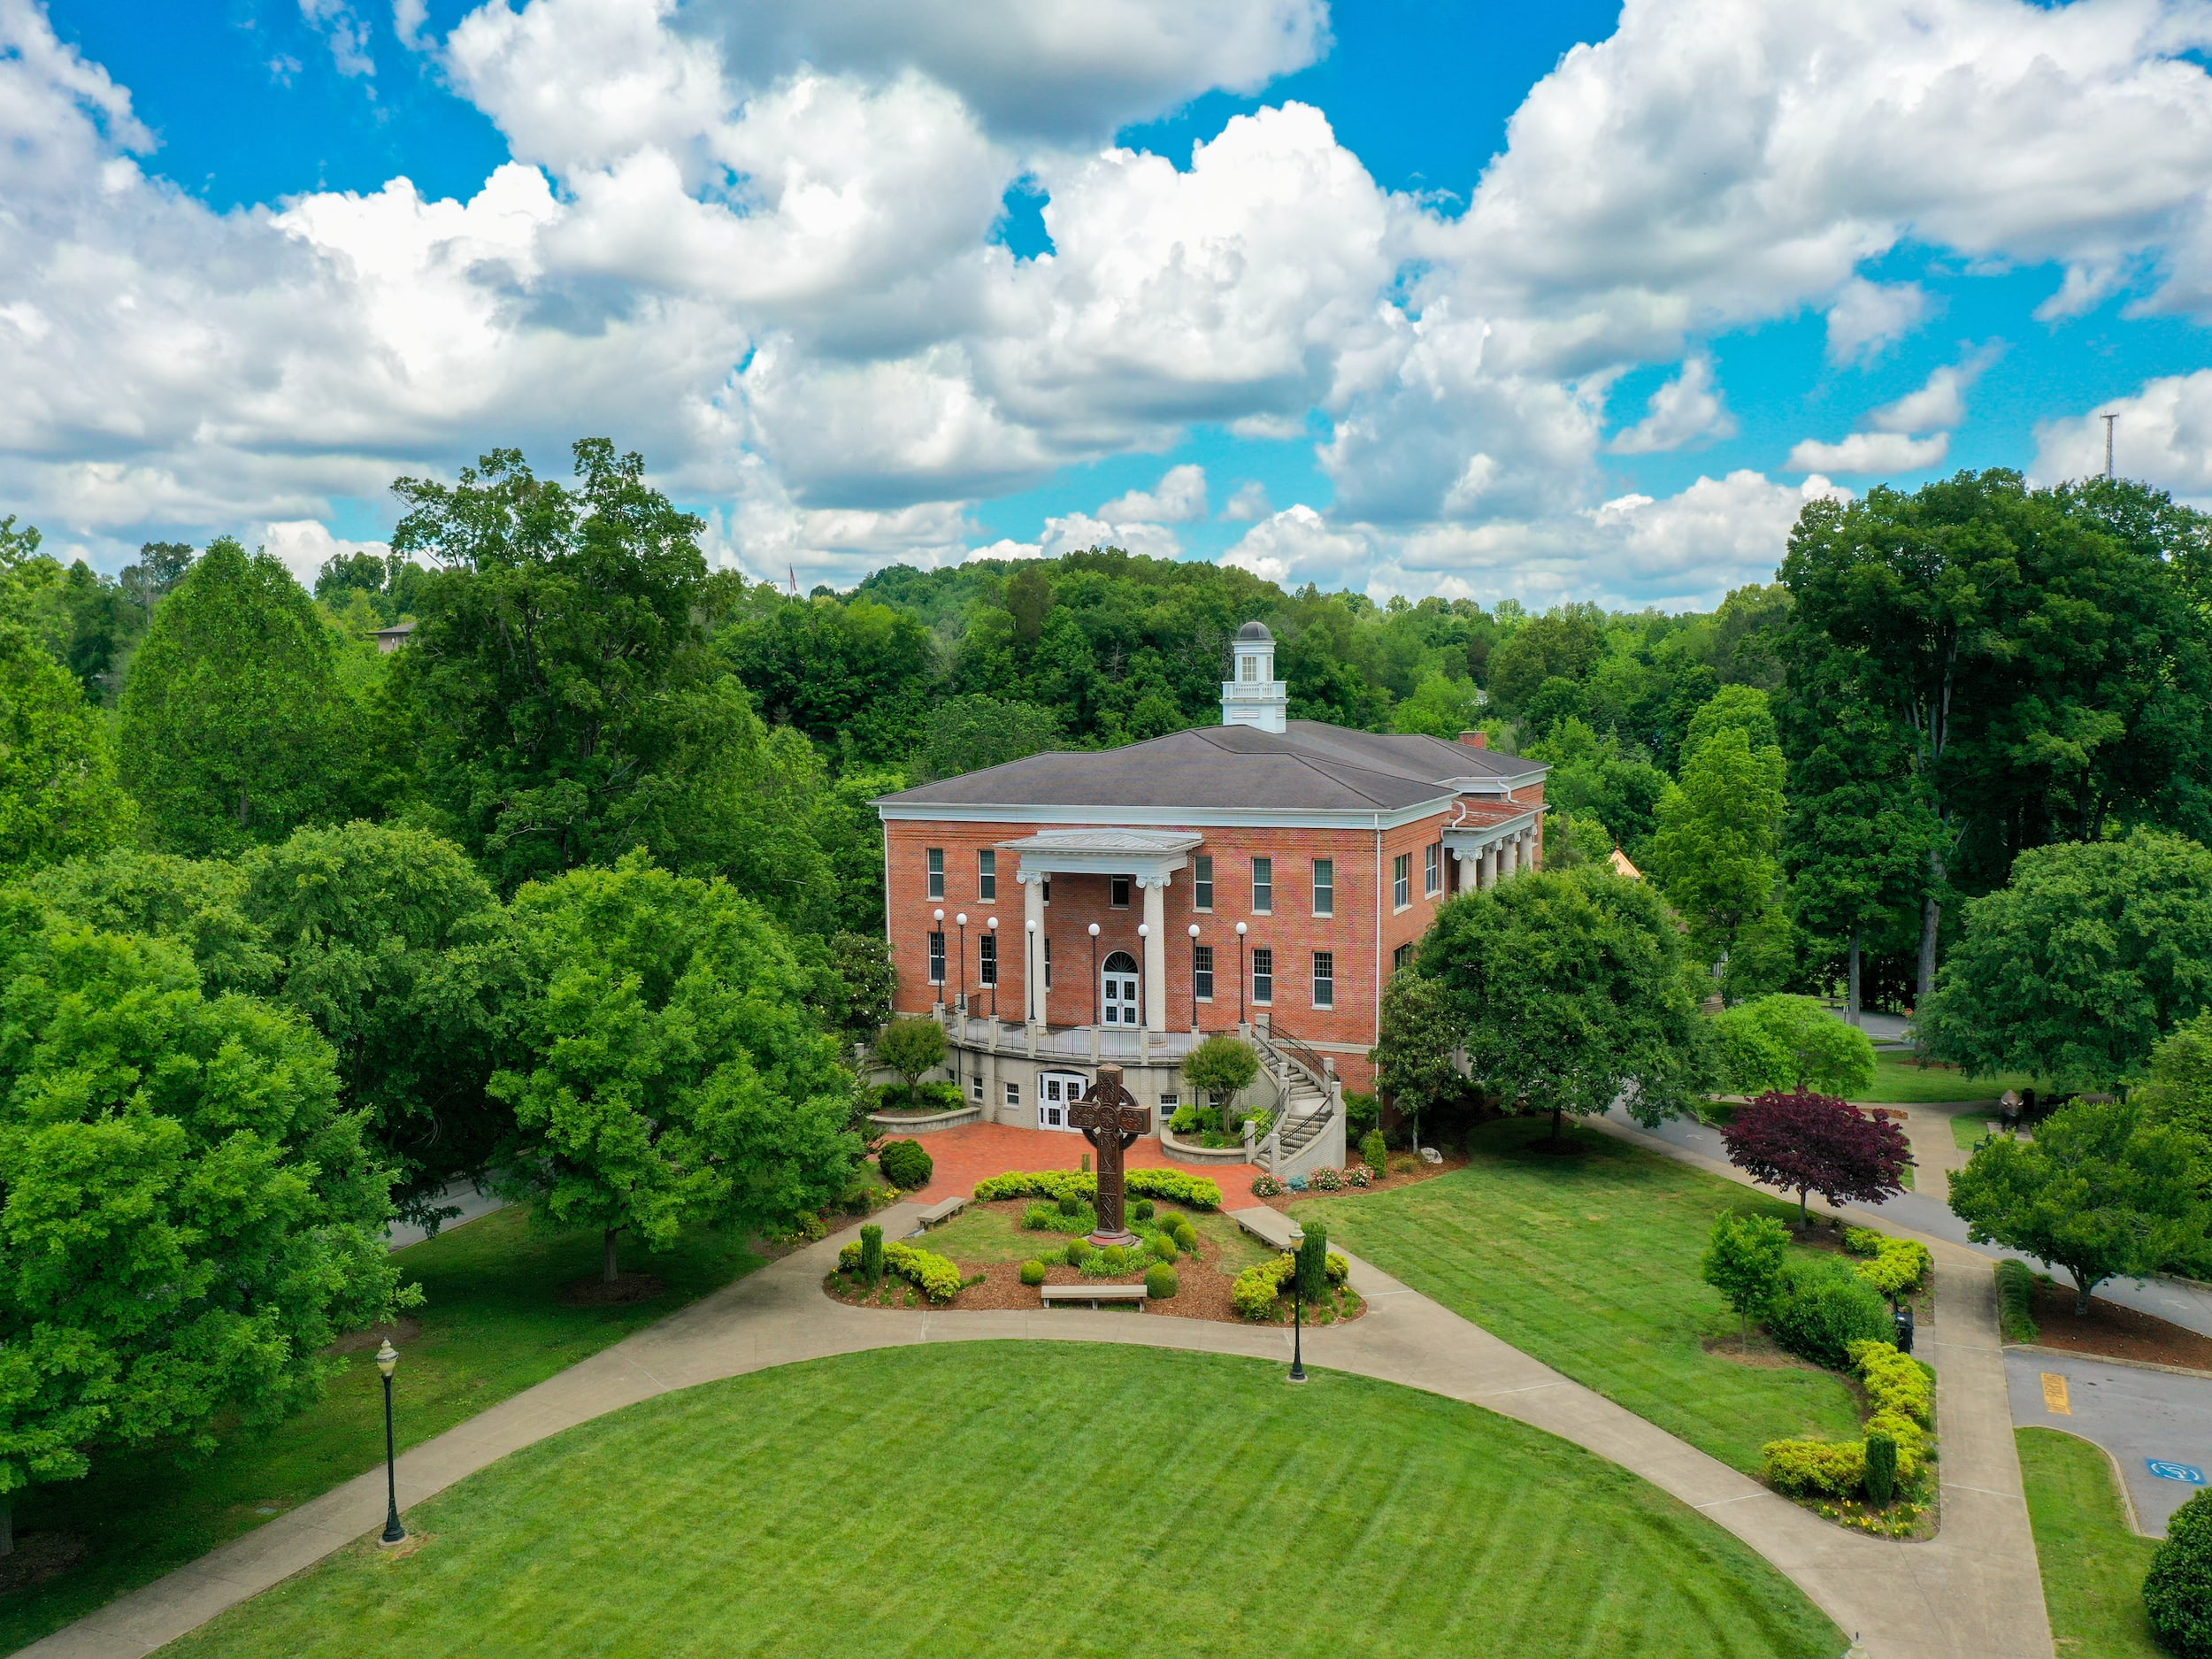 Drone photography of Milligan's Derthick Hall